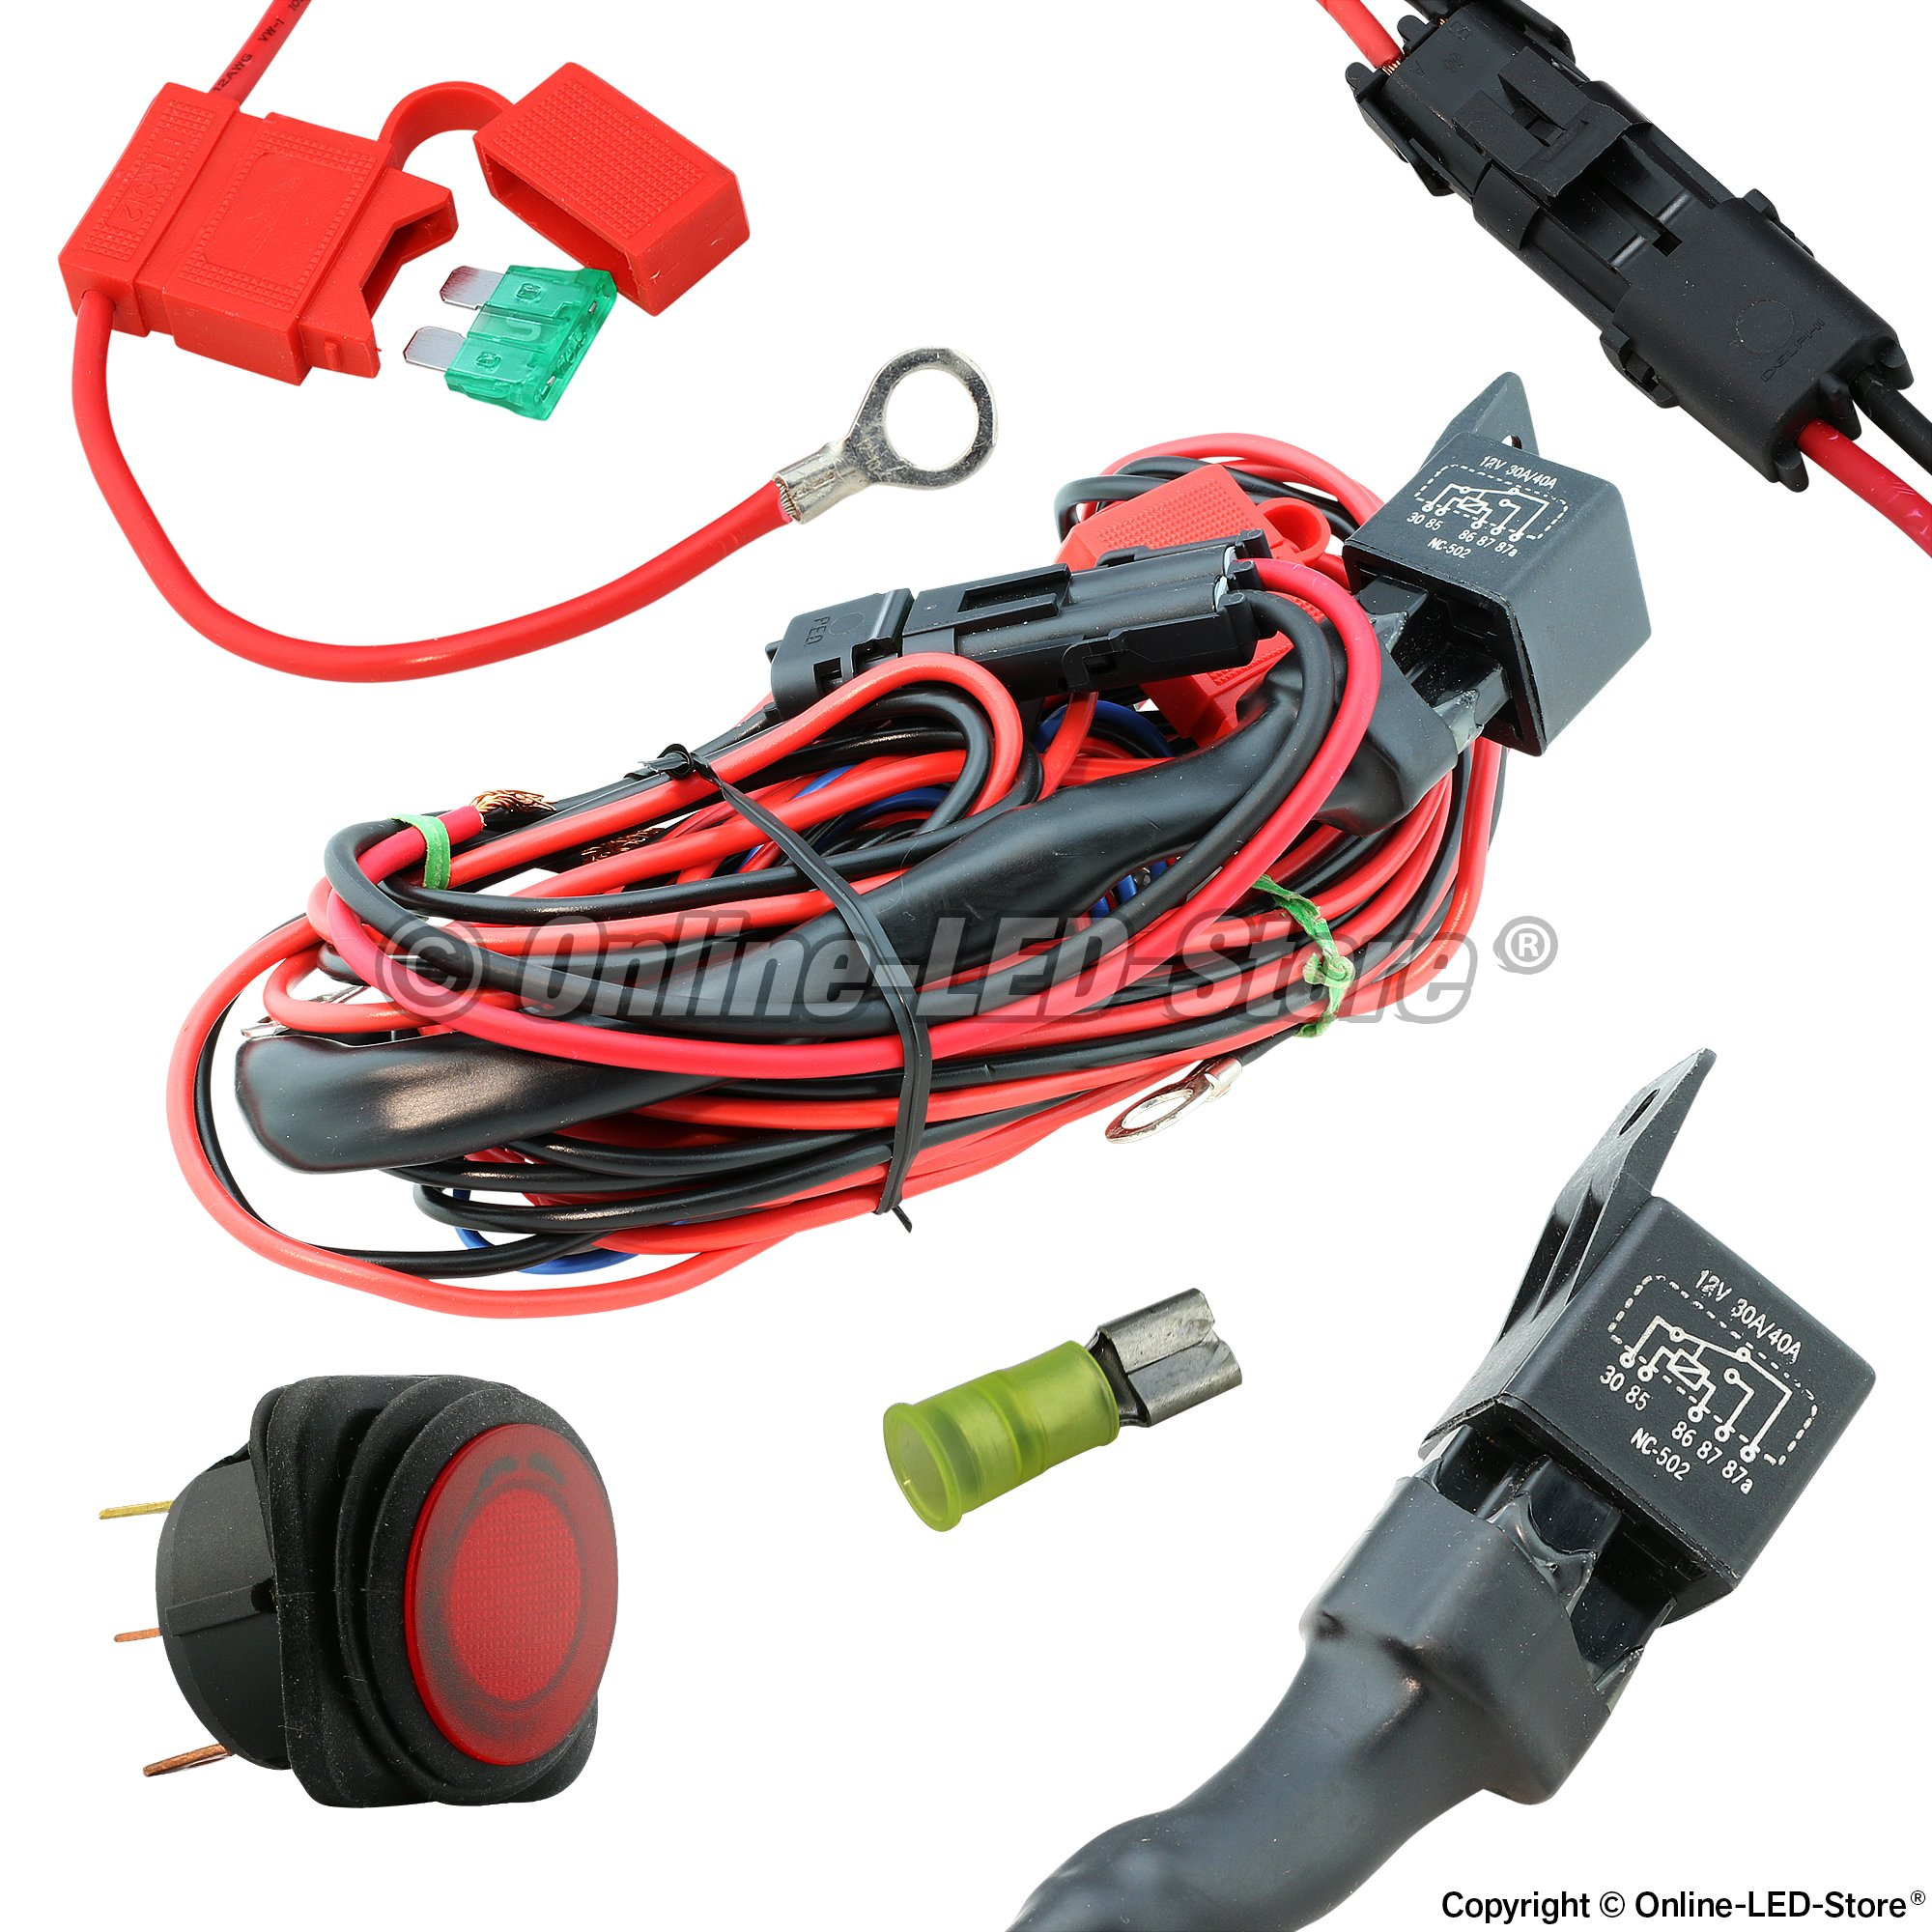 image_ORZLEDCTL002 MAINPC WEB_1 off road led light bar wiring harness off road light wiring kit Wiring Harness Diagram at creativeand.co